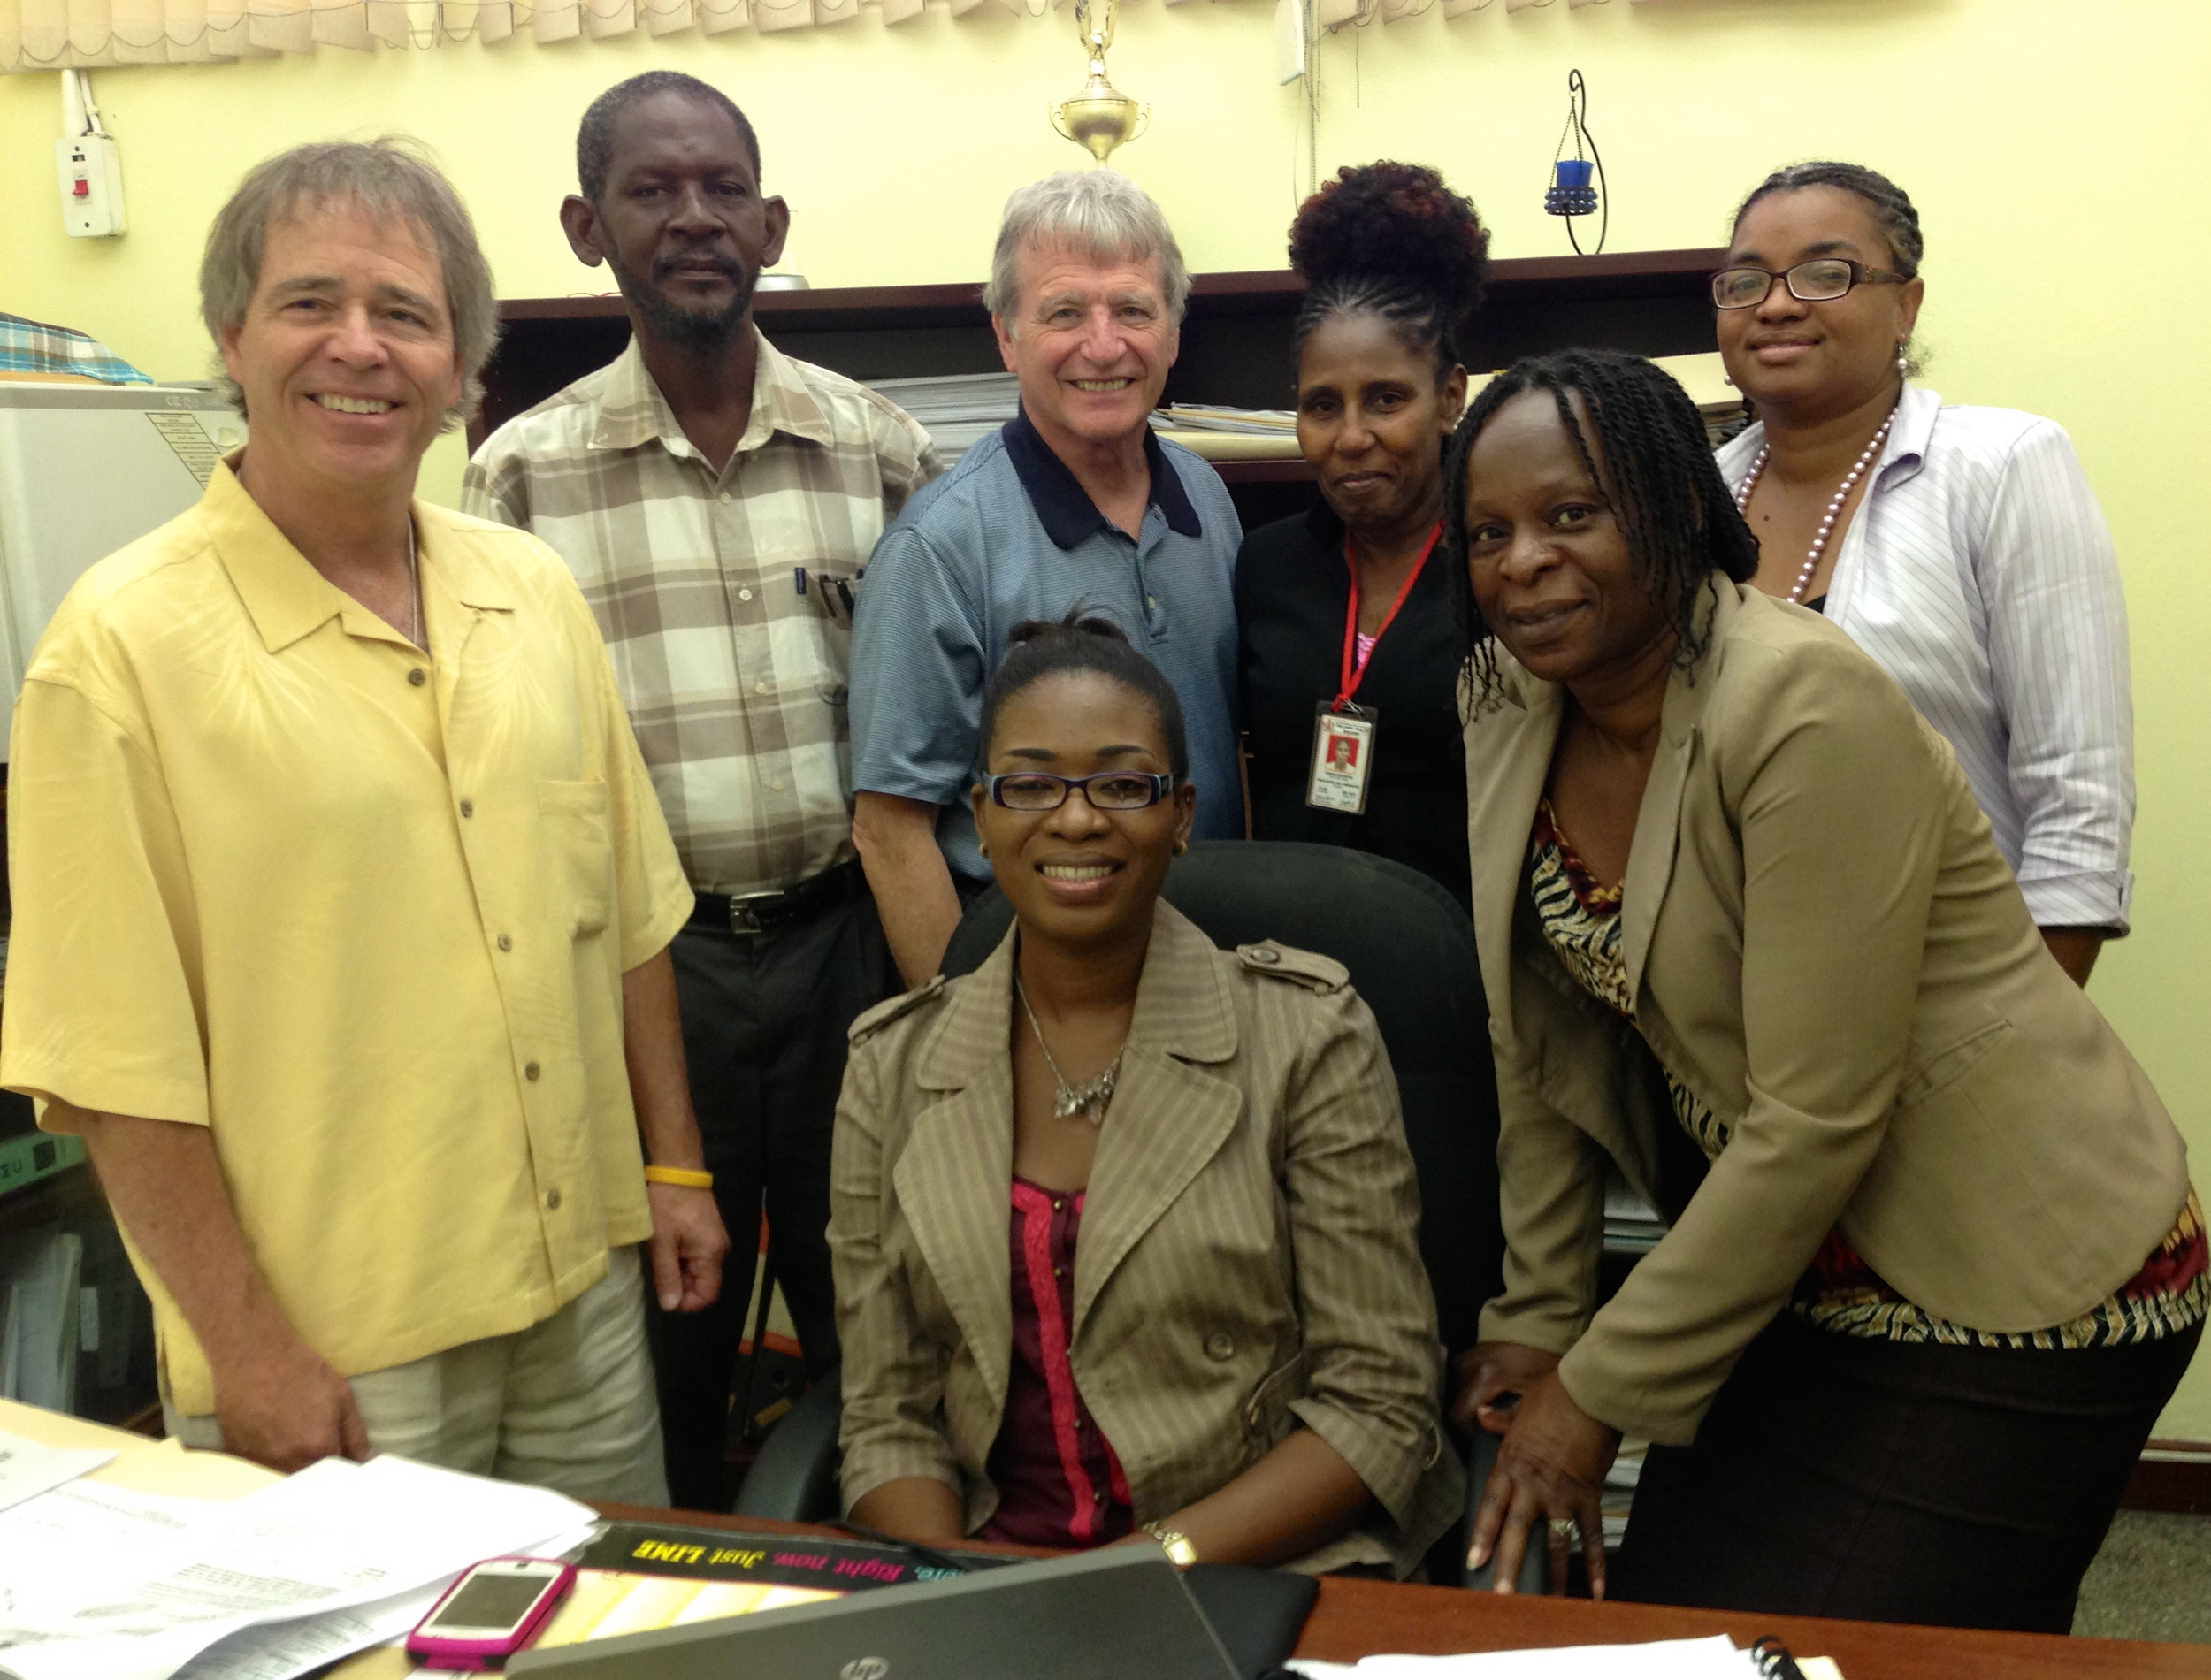 Mick & Bob meeting with MOH officials at Cornwall Regional Hospital, Montego Bay this past May 17th.